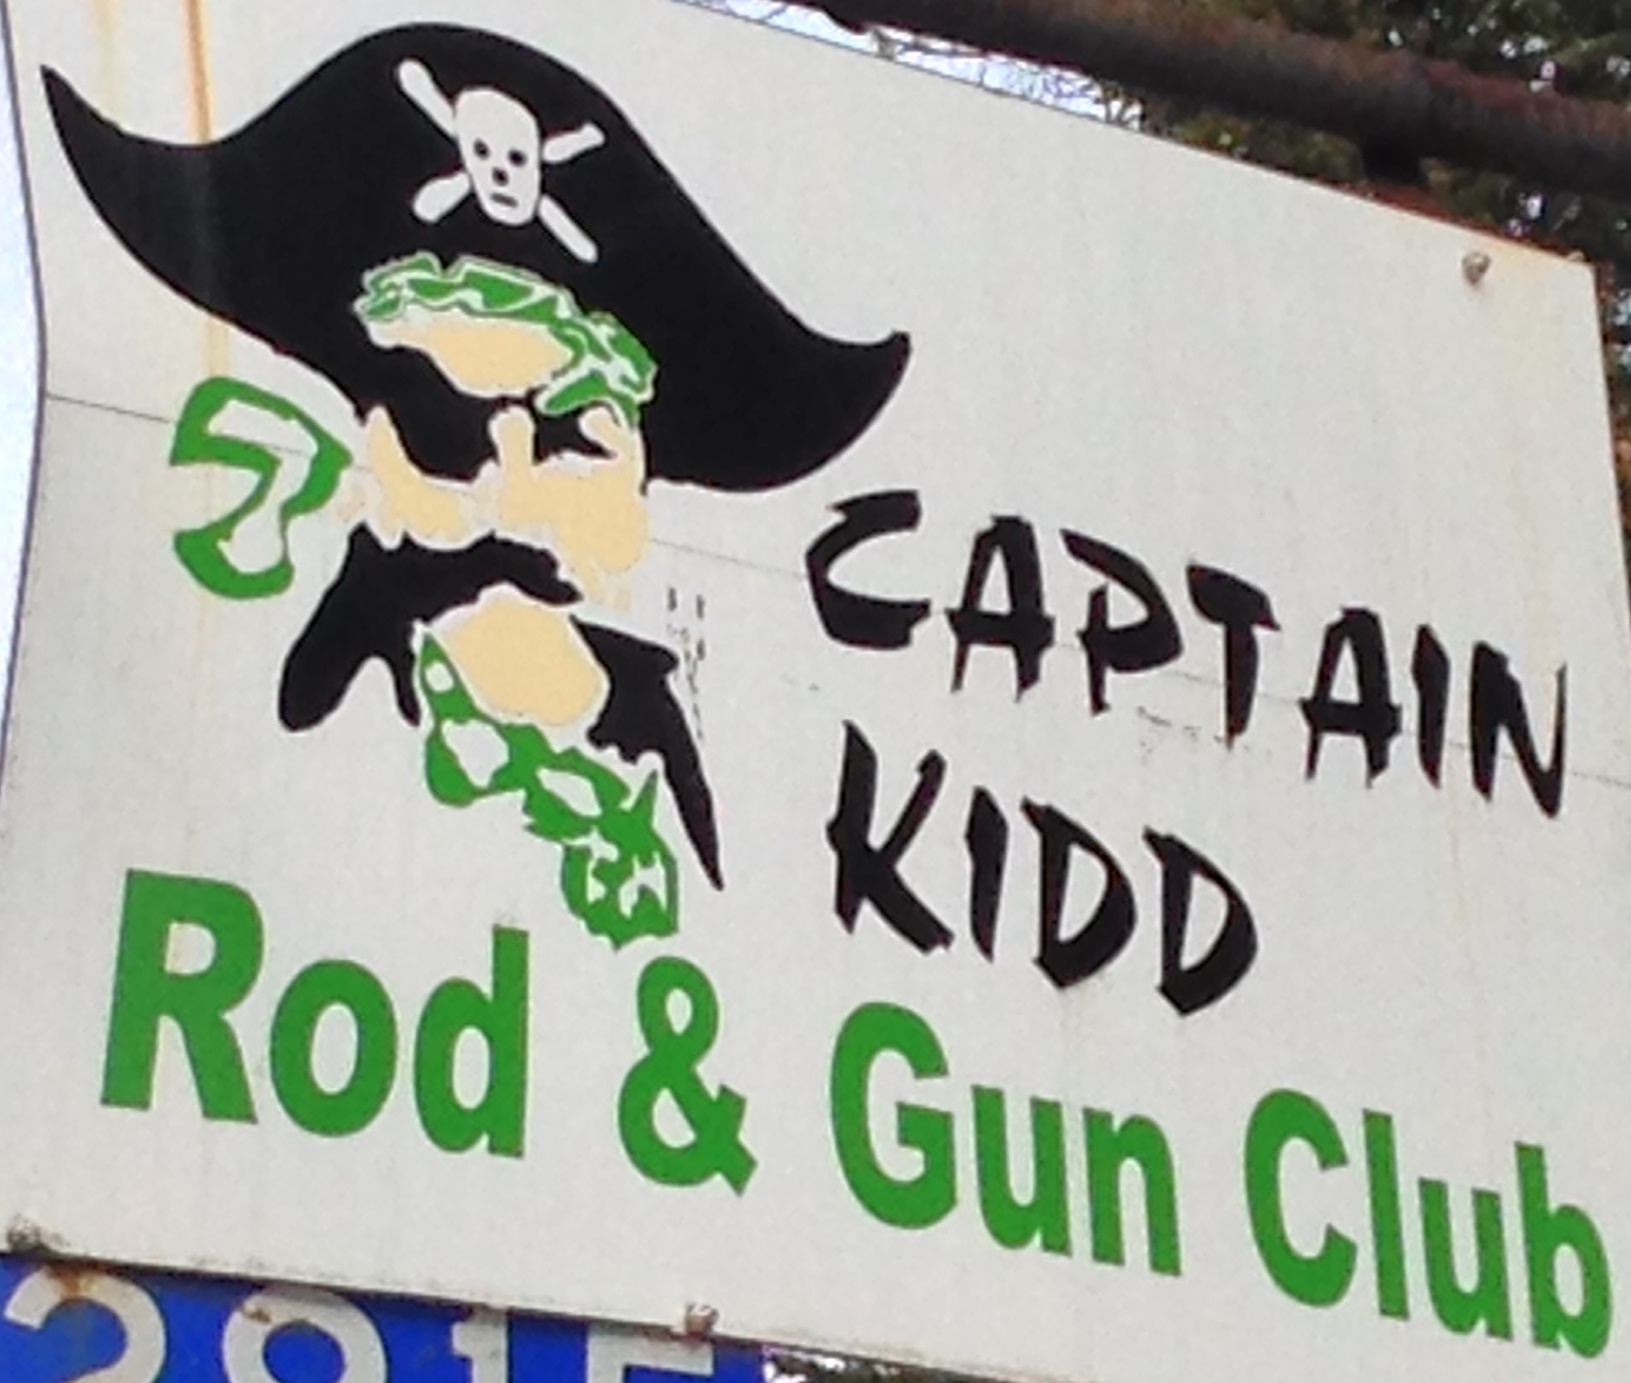 captainkidd highway sign